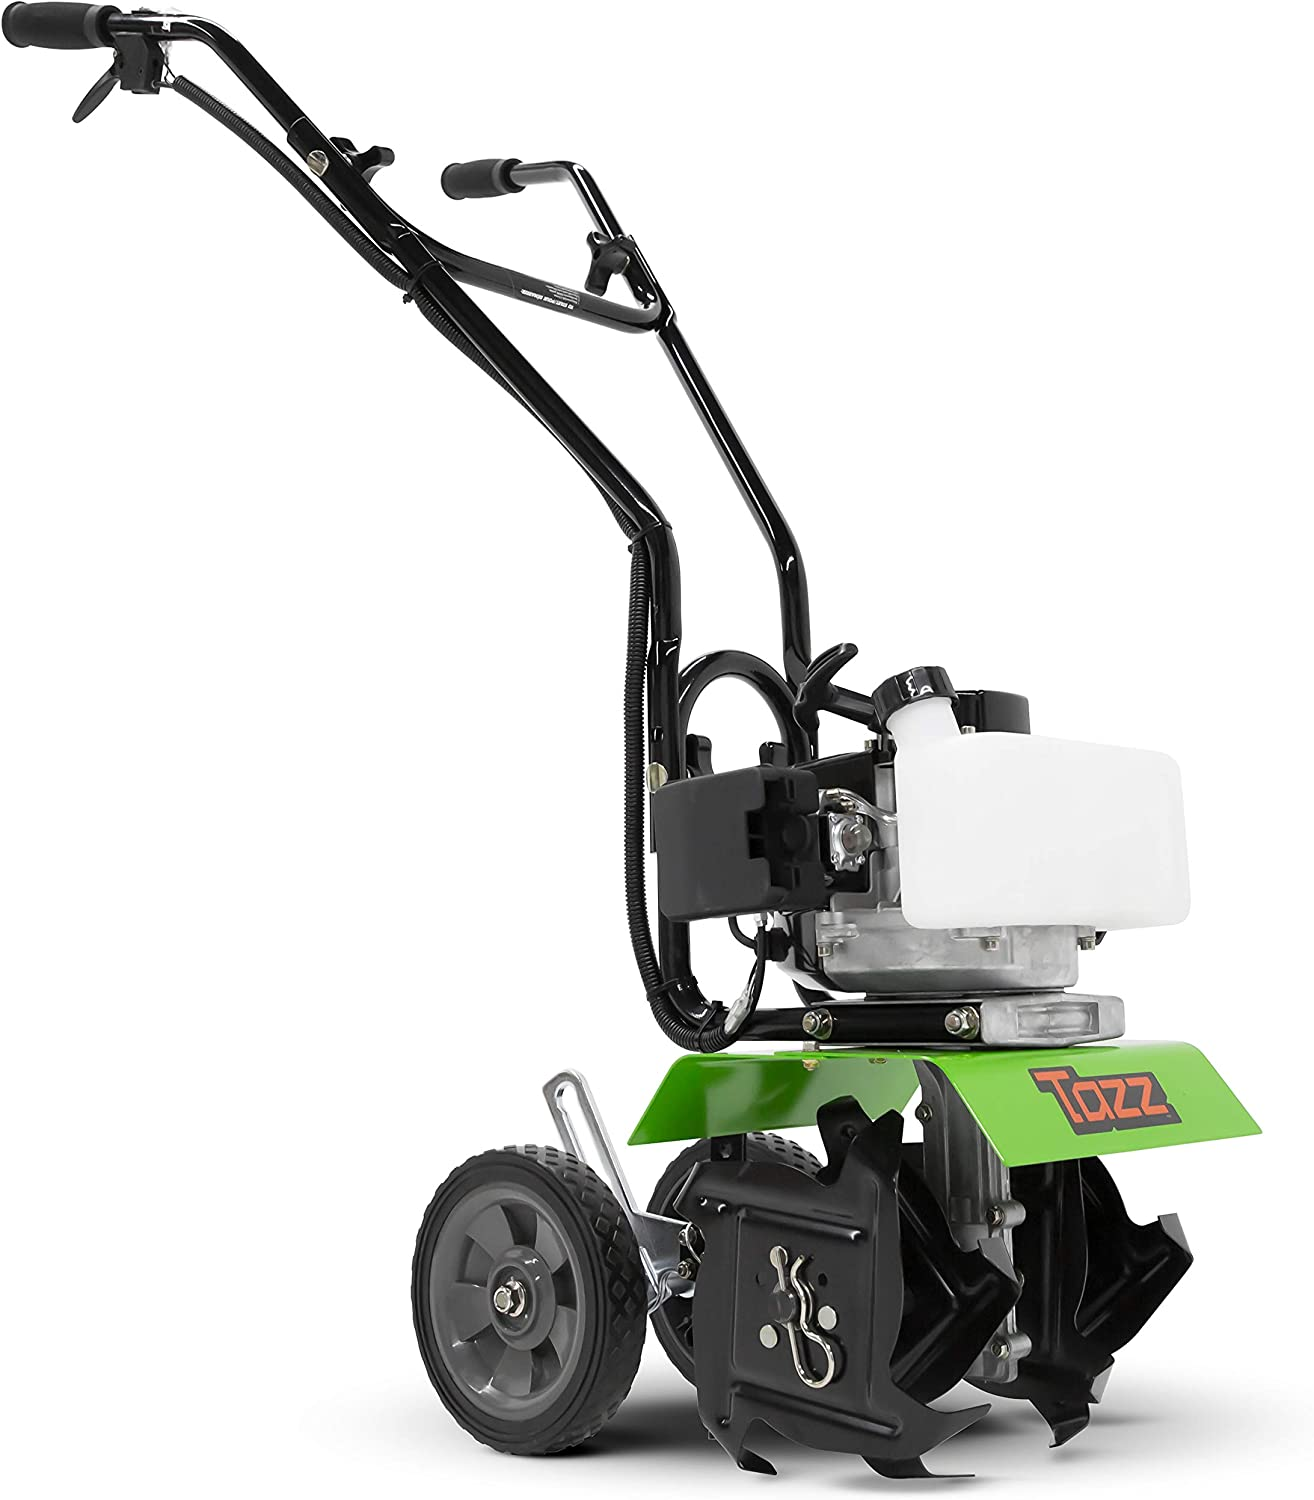 TAZZ 35351 Garden Cultivator 33cc Max Beauty products 82% OFF Dr Viper 2-Cycle Gear Engine